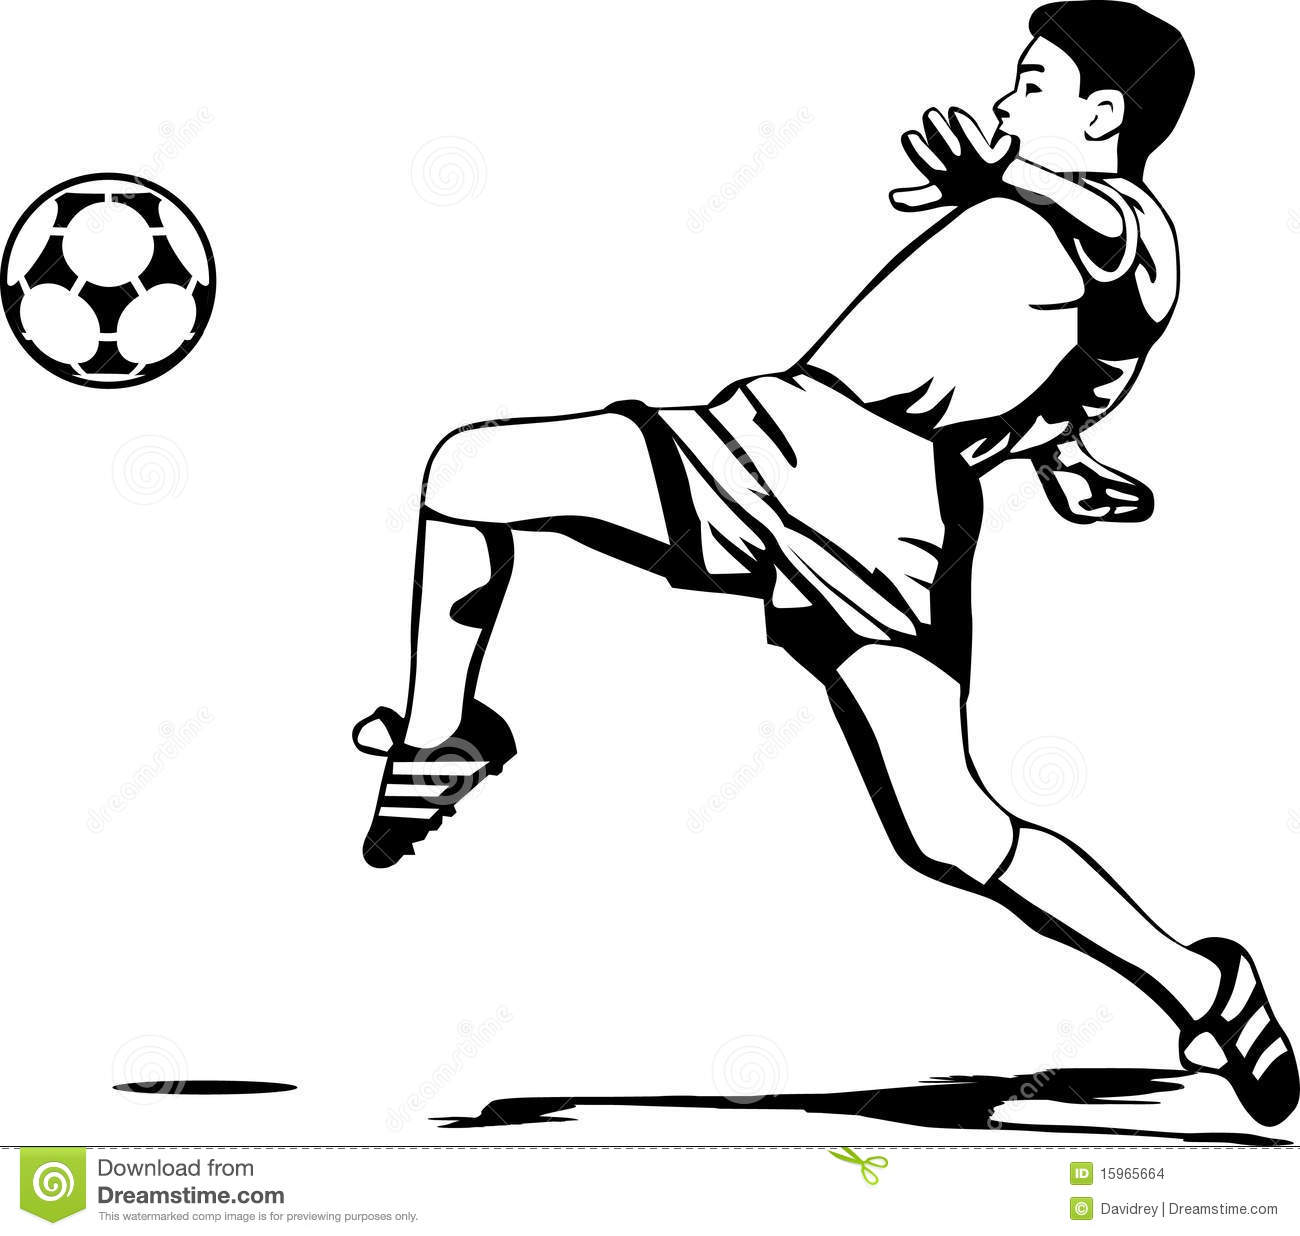 Soccer Player Stock Images - Image: 15965664